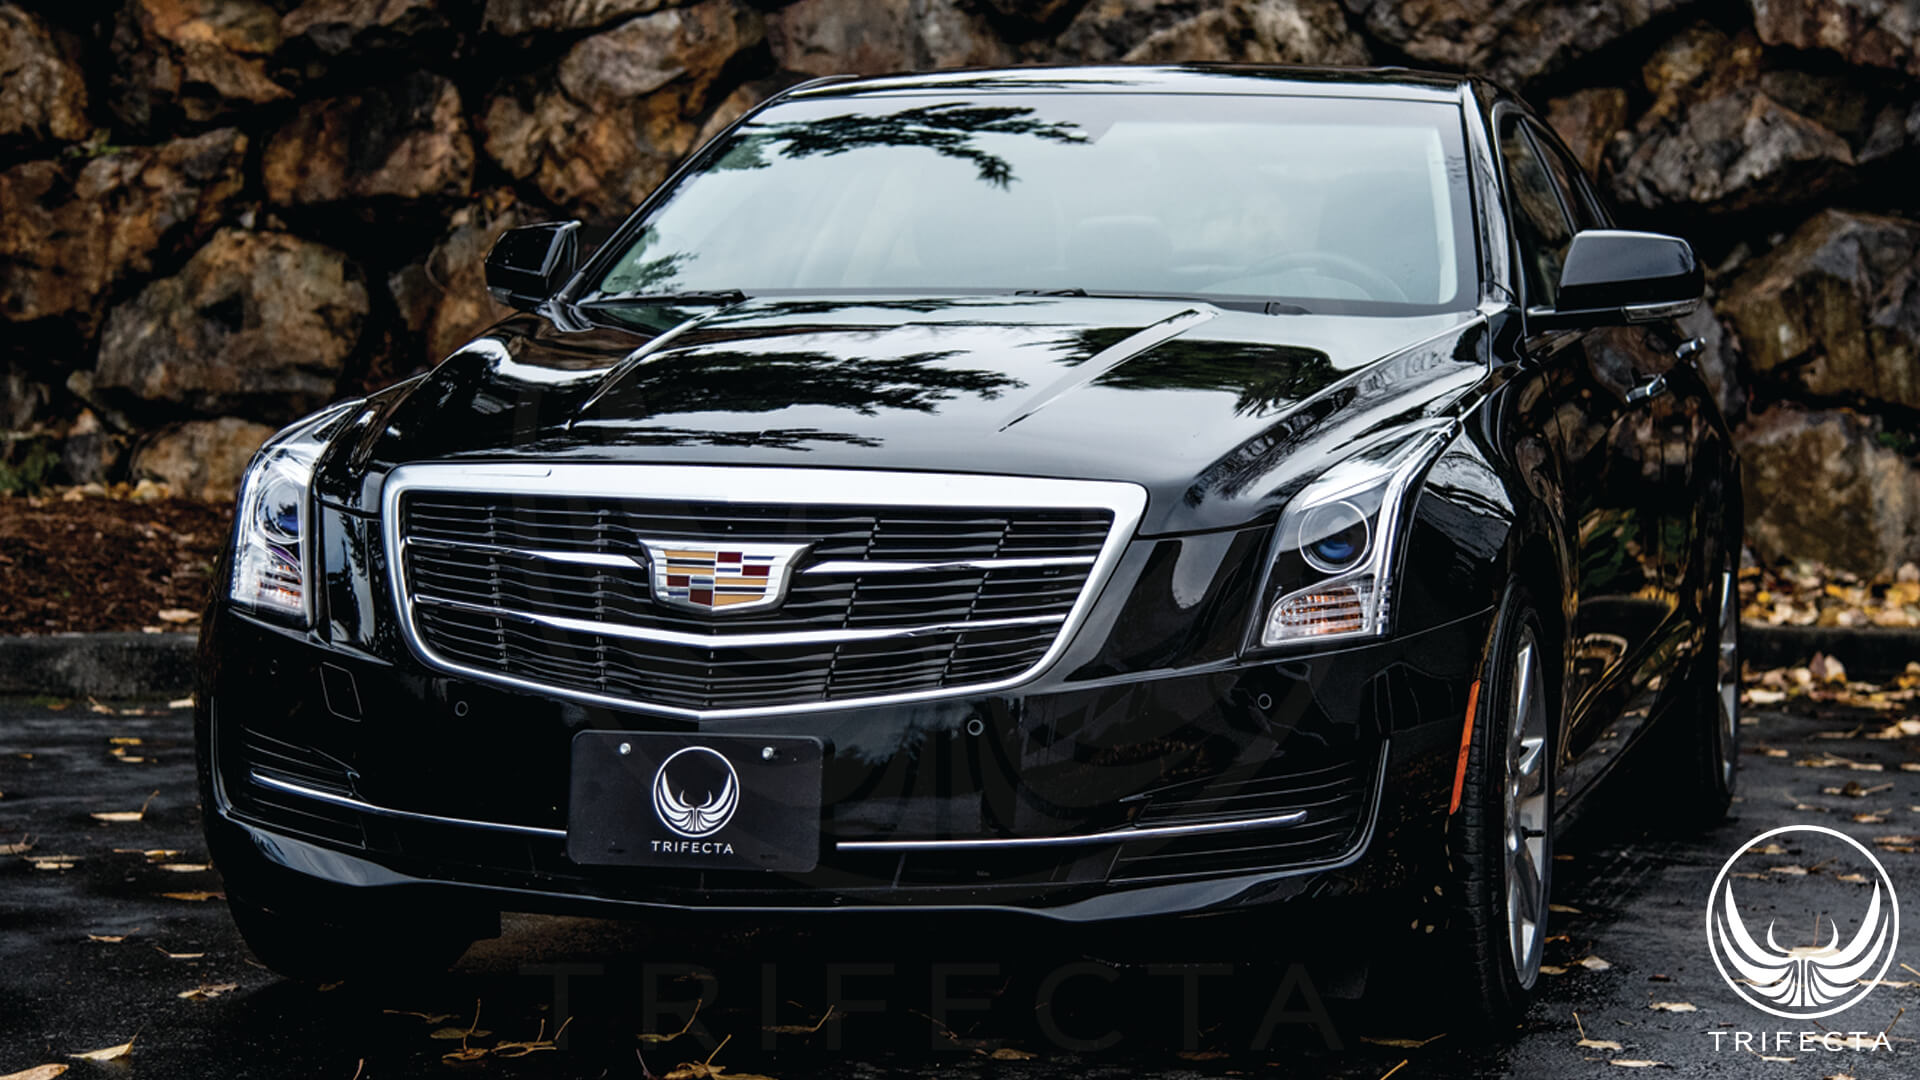 Trifecta 2016 Cadillac Ats 2 0t Calibration January 2016 Update